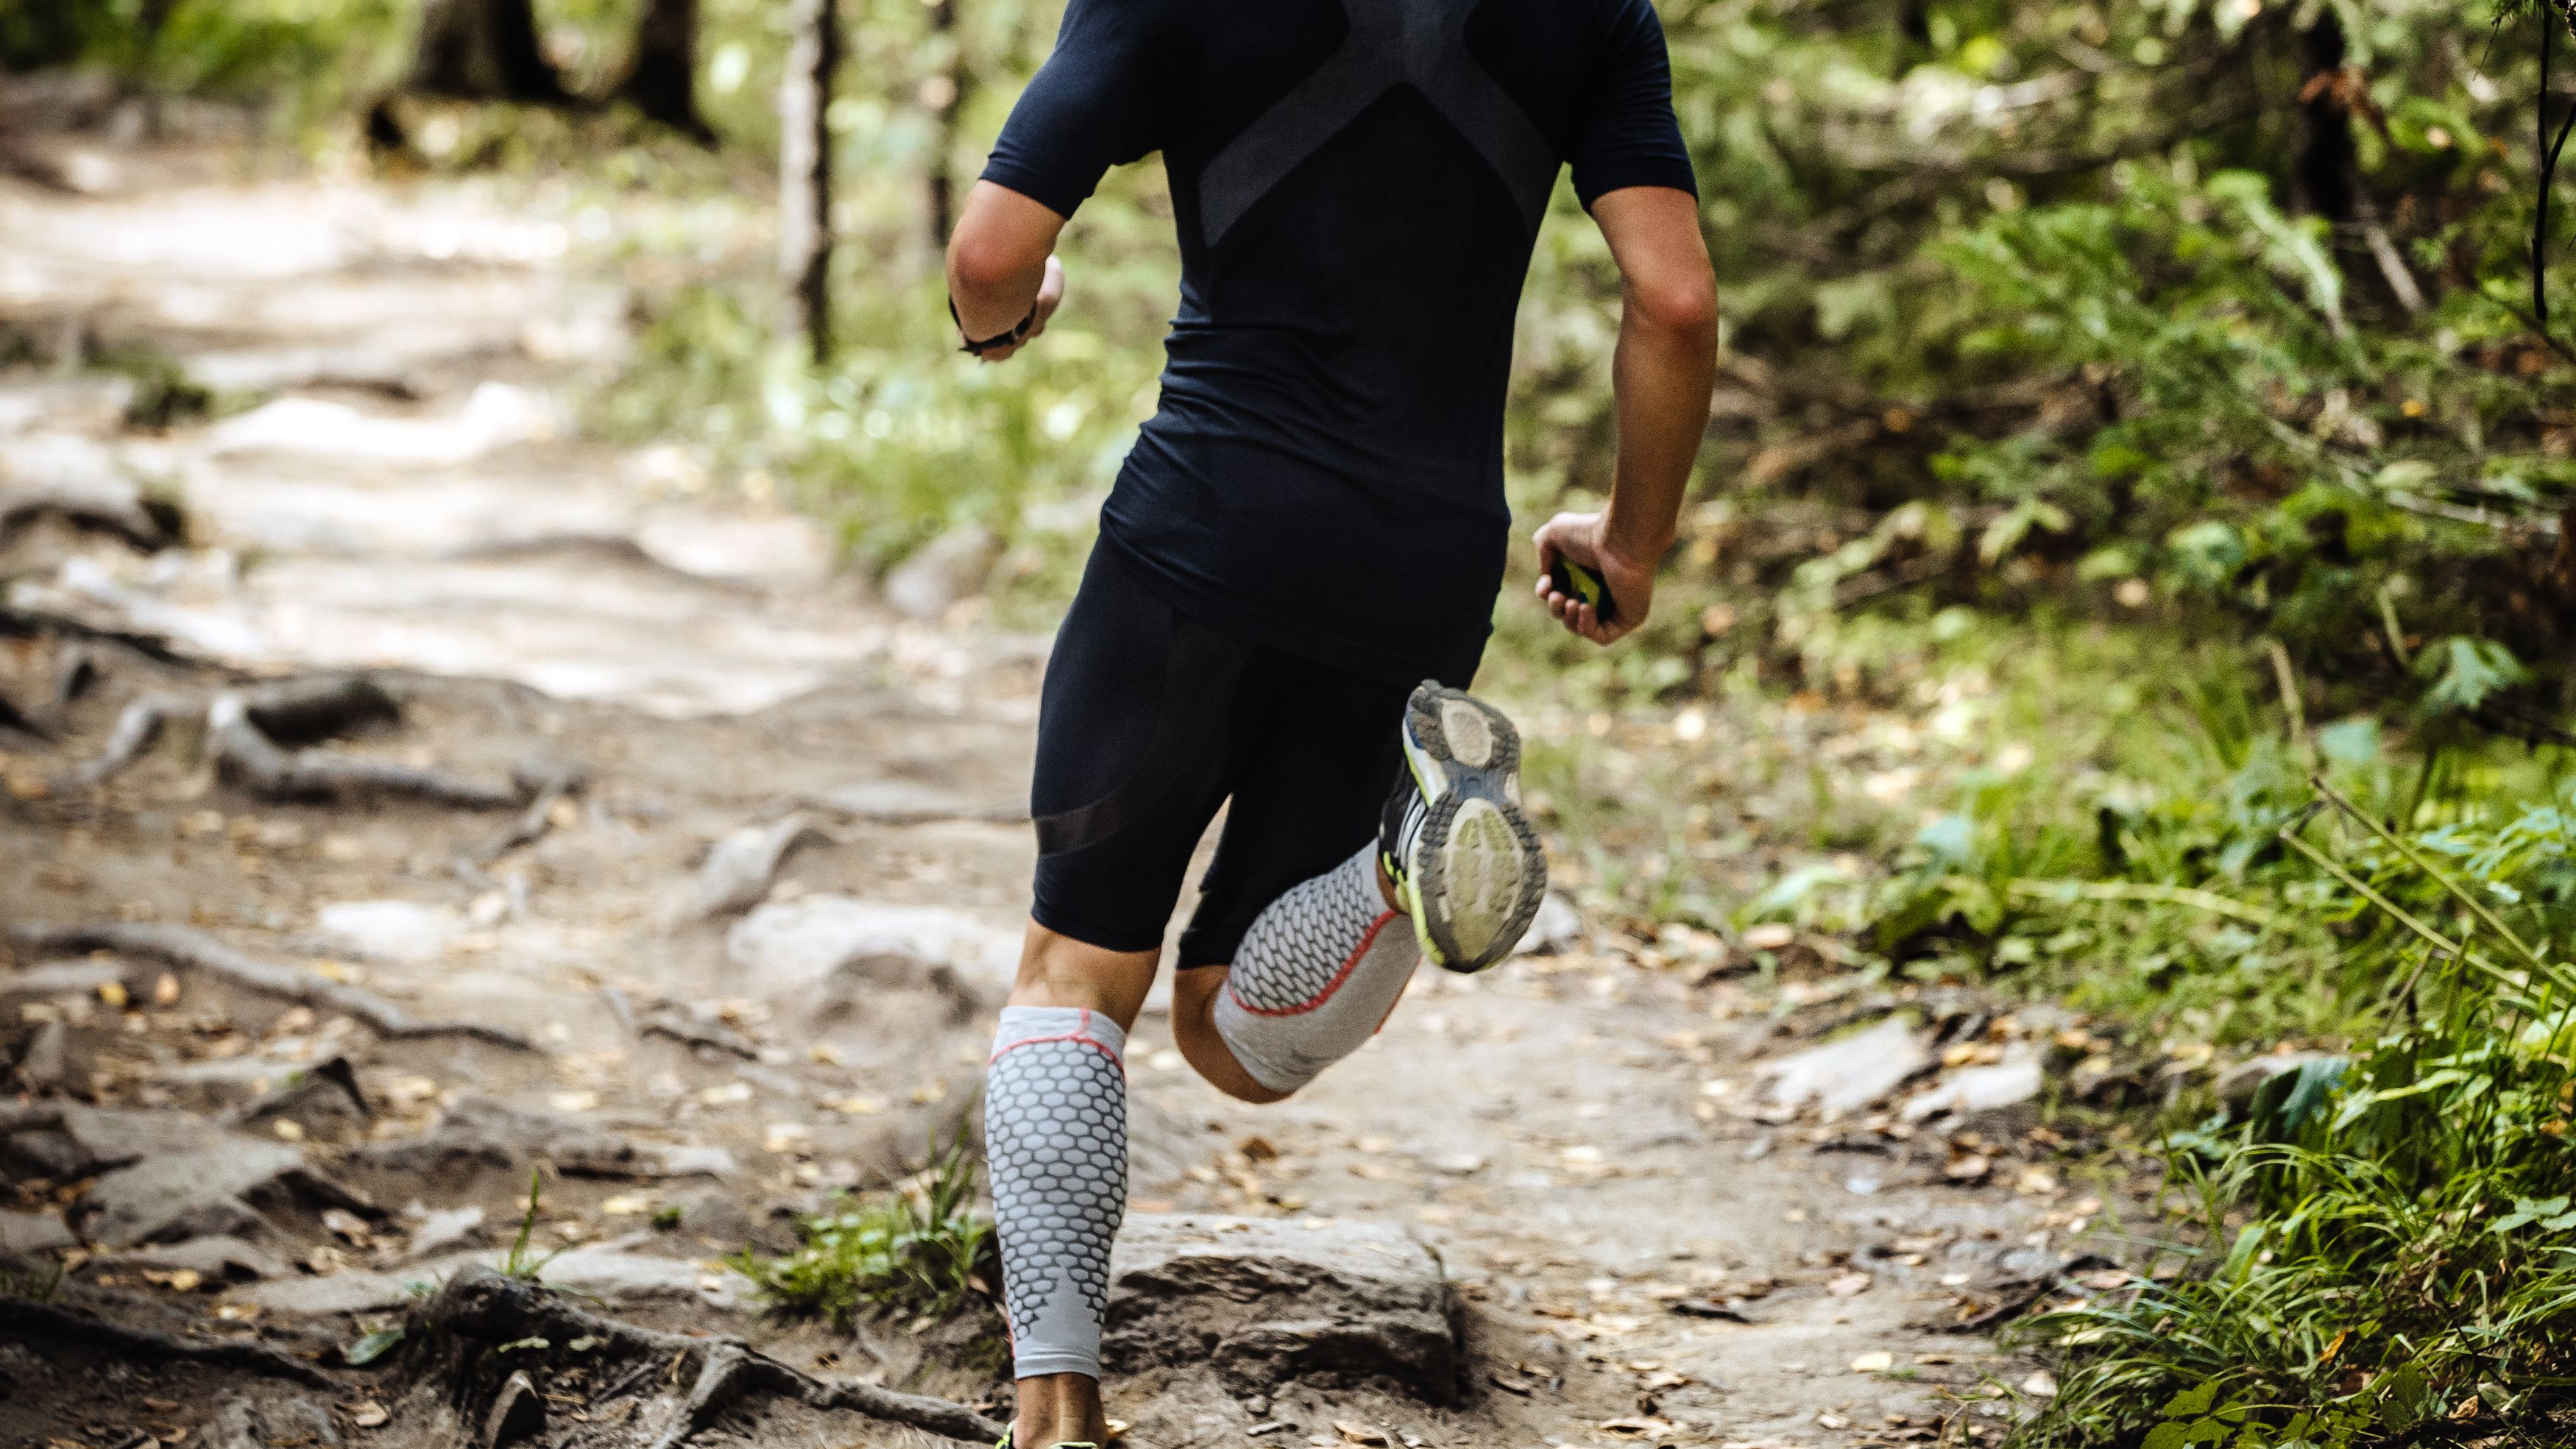 949dd8e79d9387 The 6 Best Calf Compression Sleeves of 2019